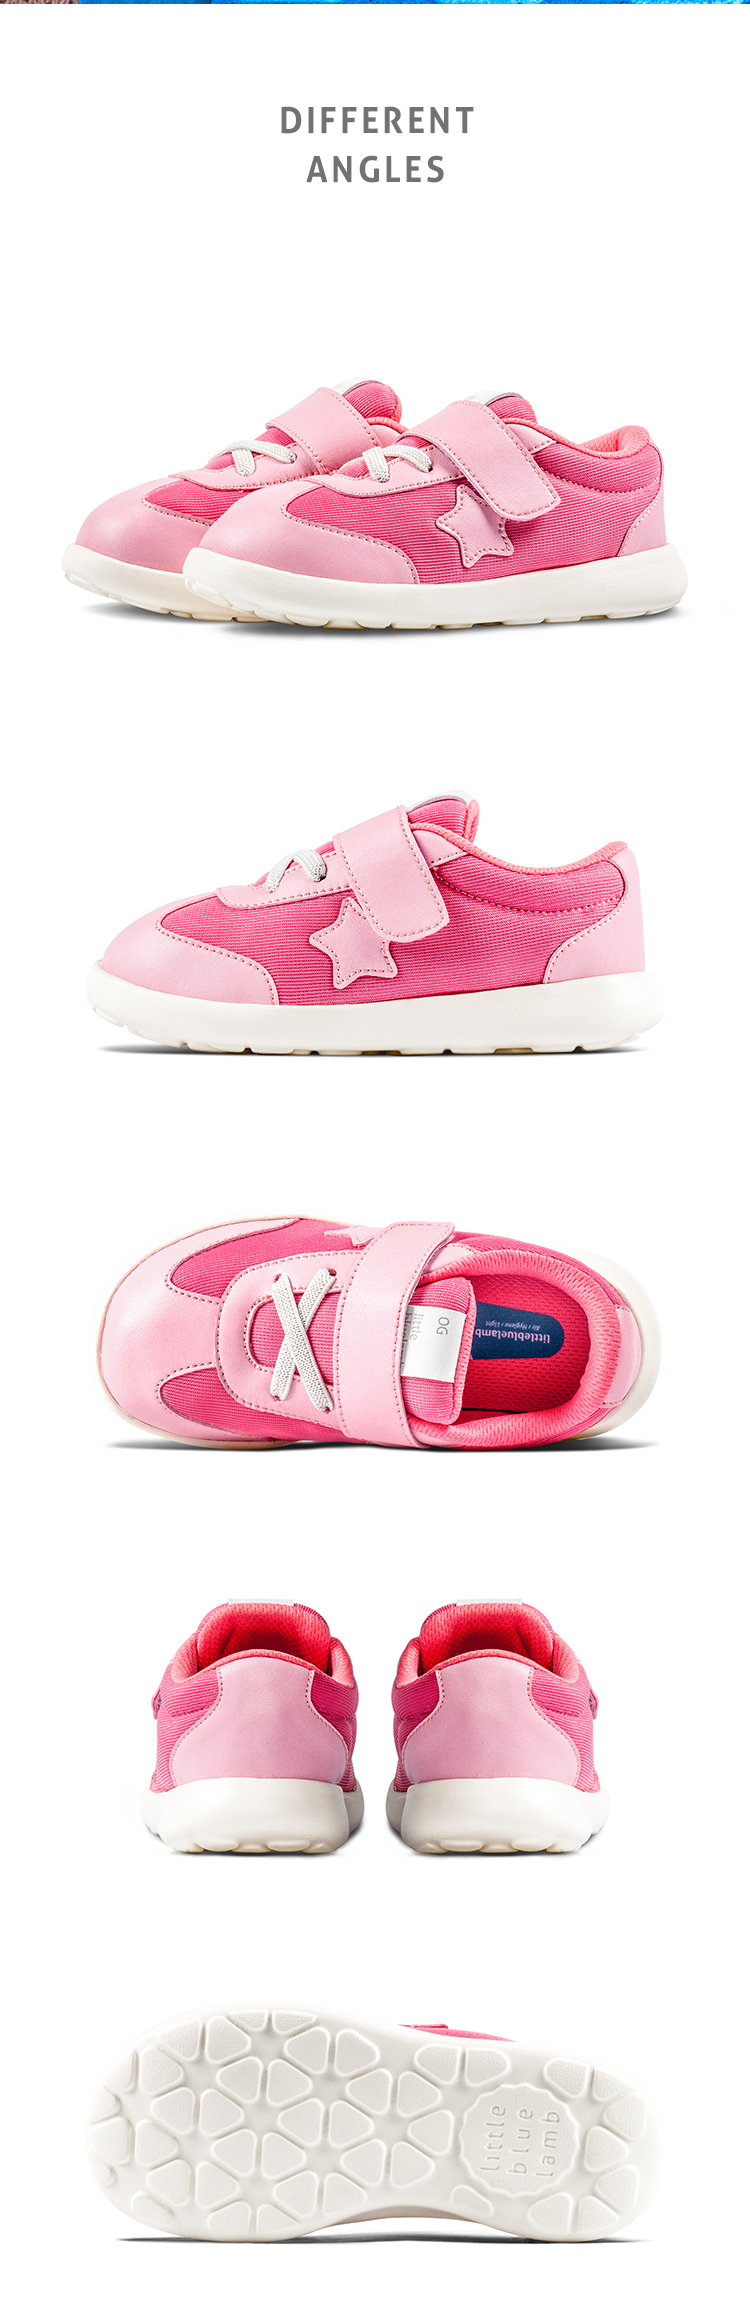 littlebluelamb brand boys shoes for kids girls